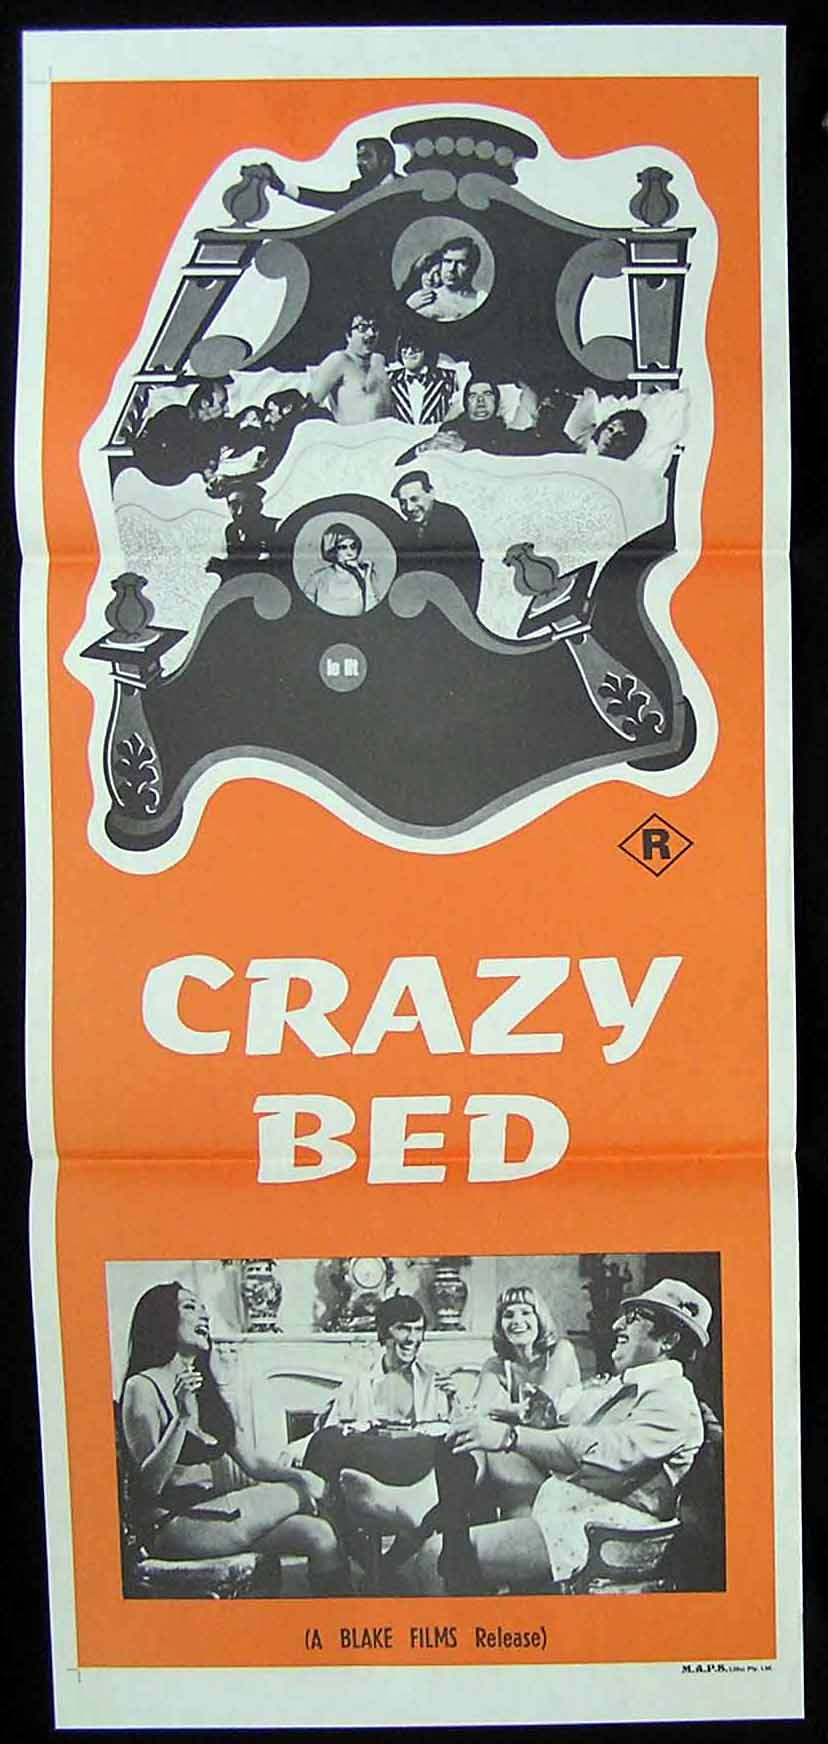 CRAZY BED 70s German Sexploitation Movie Poster